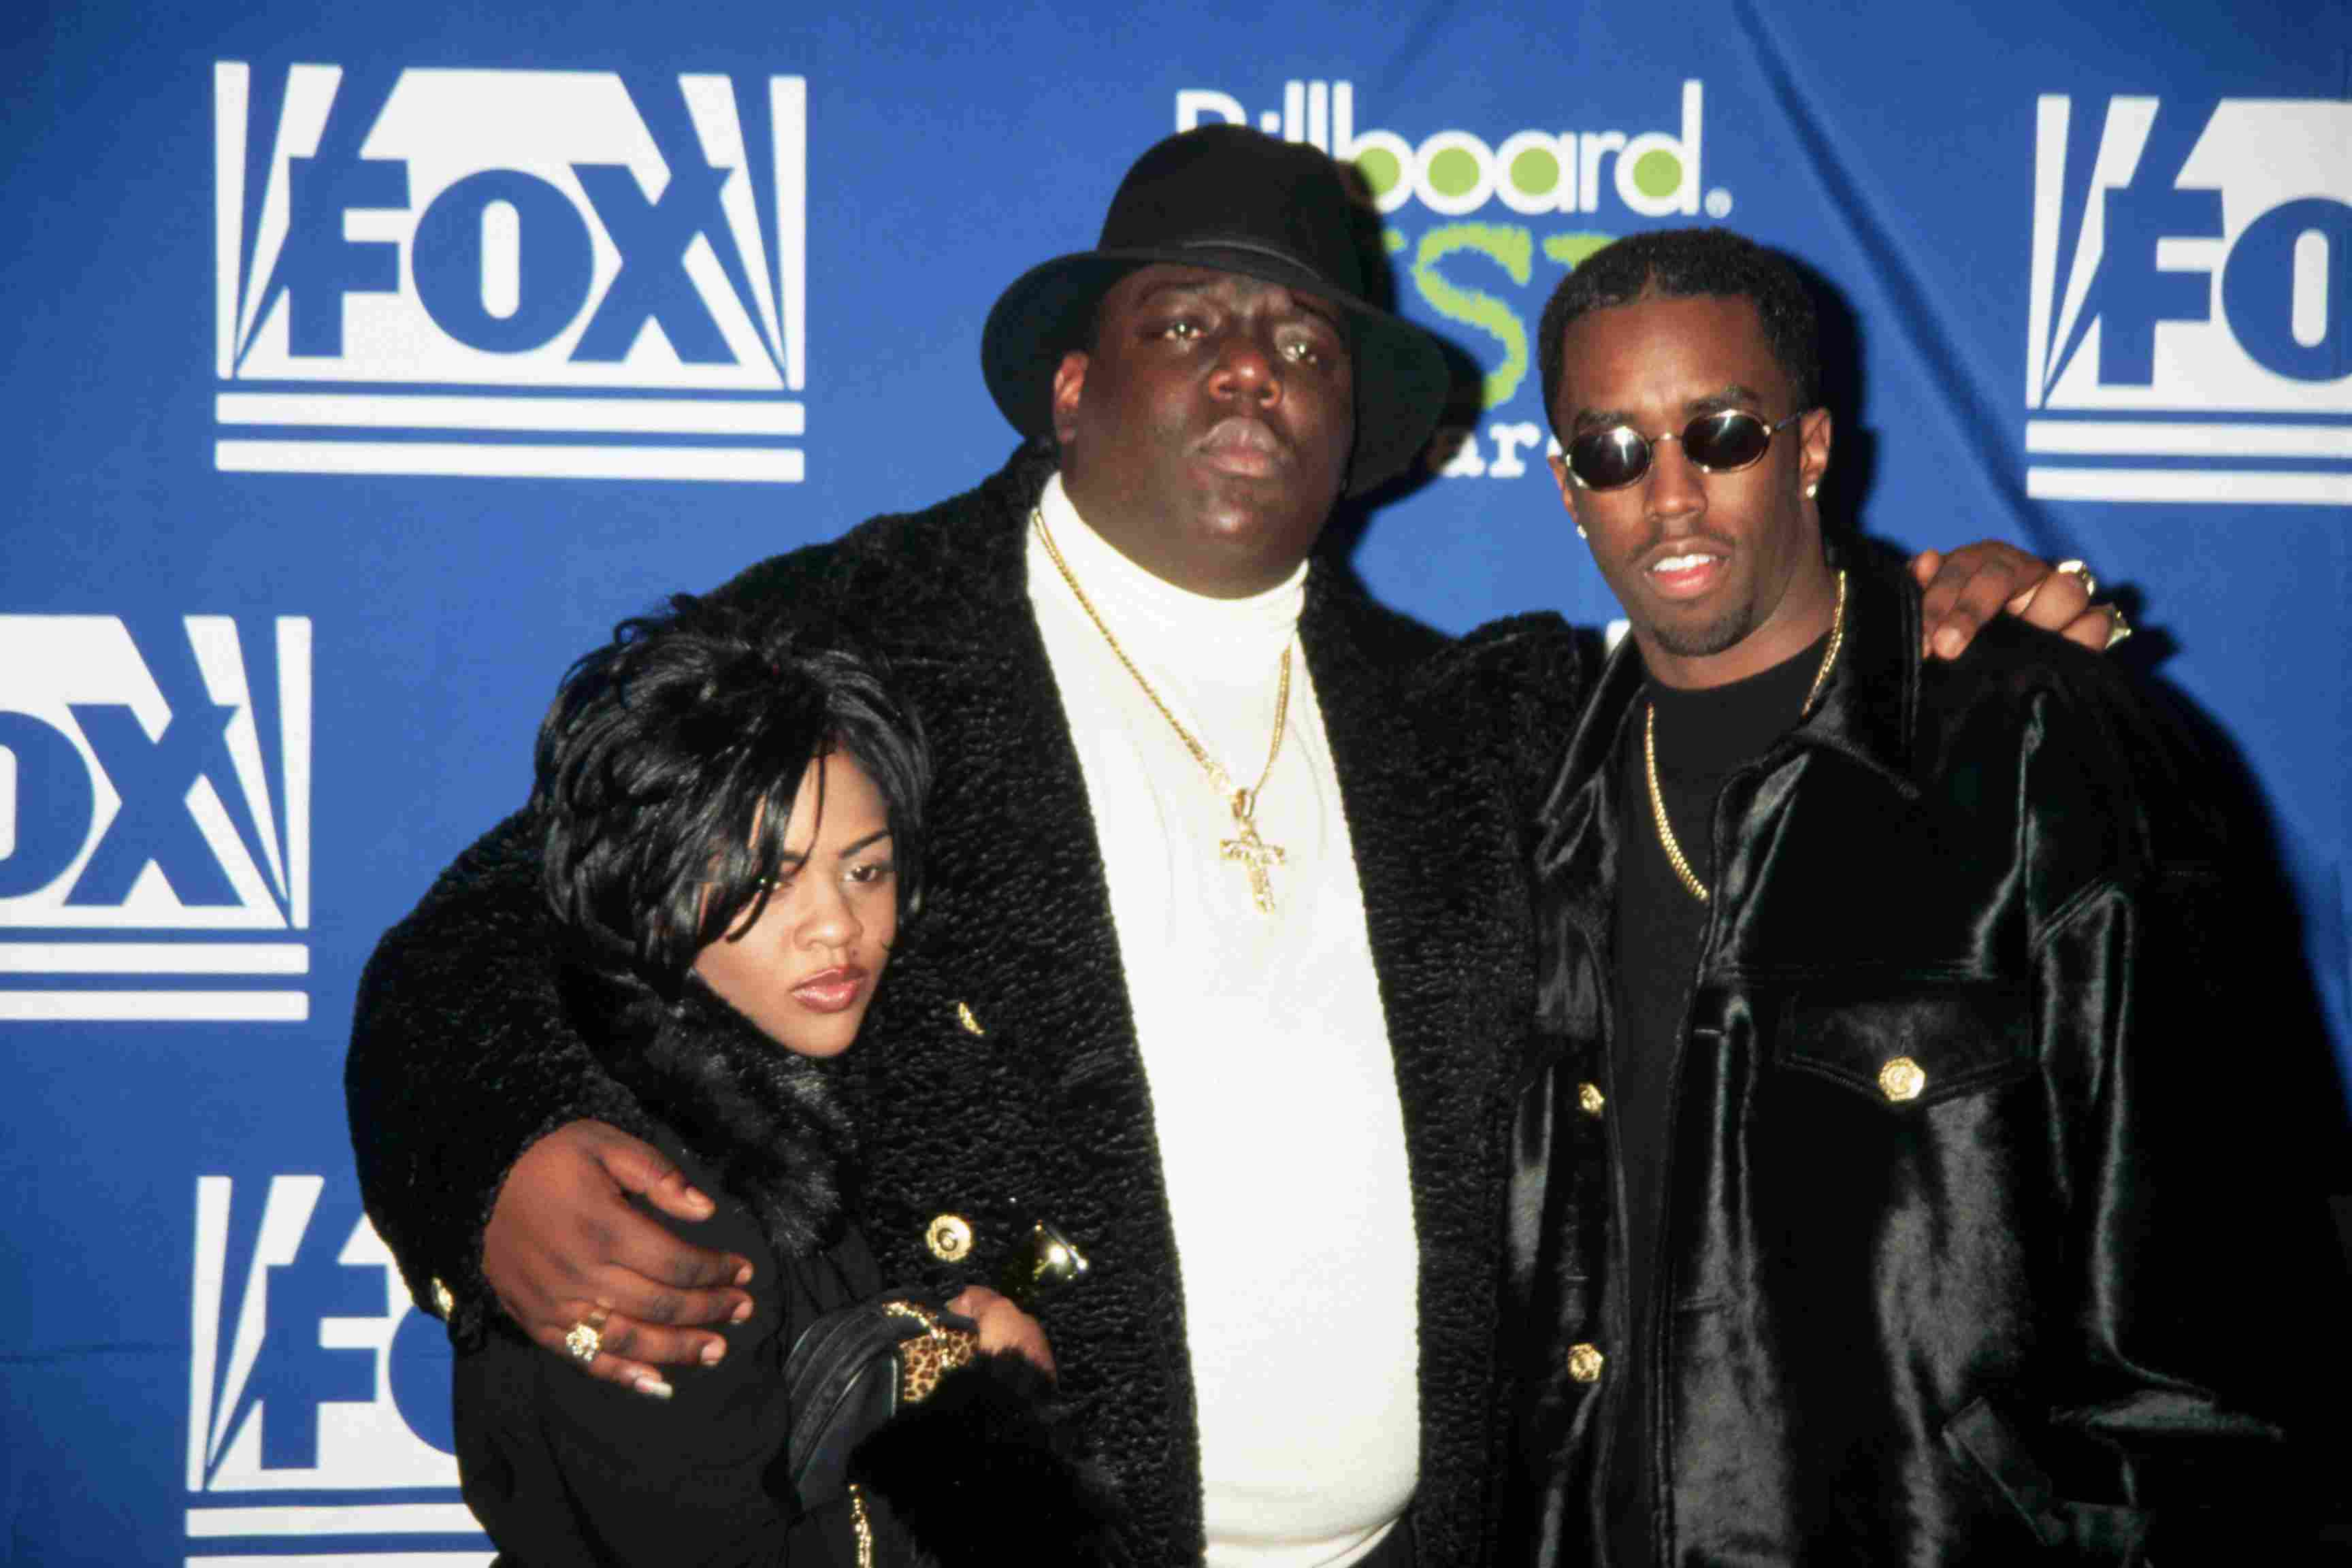 Little Kim, The Notorious B.I.G., and Sean 'Puffy' Combs